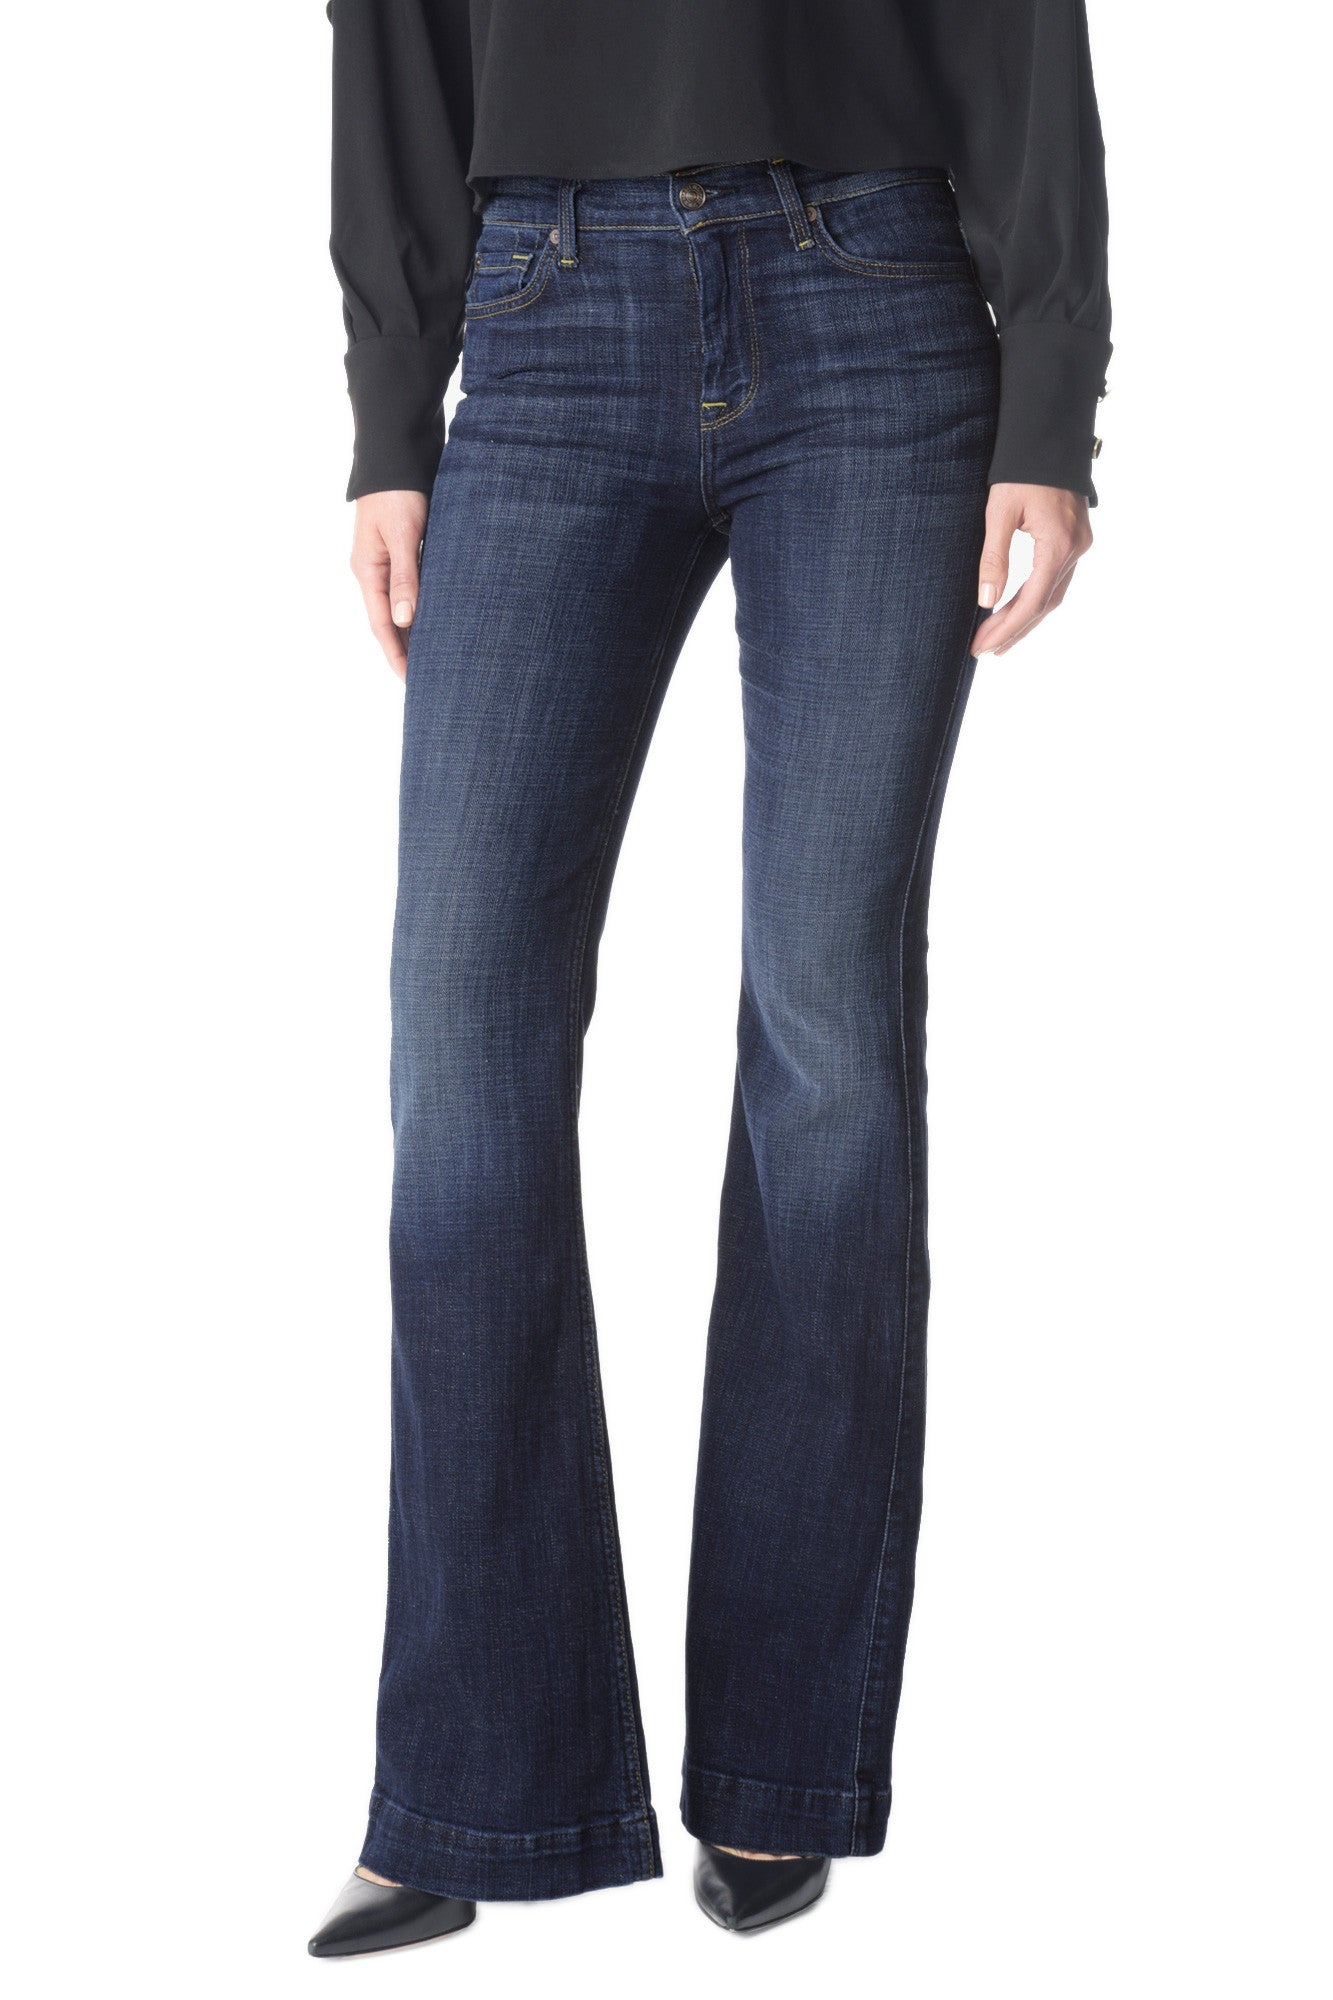 7 For All Mankind Ginger Flare Jeans in Royal Broken Twill FW6400369A